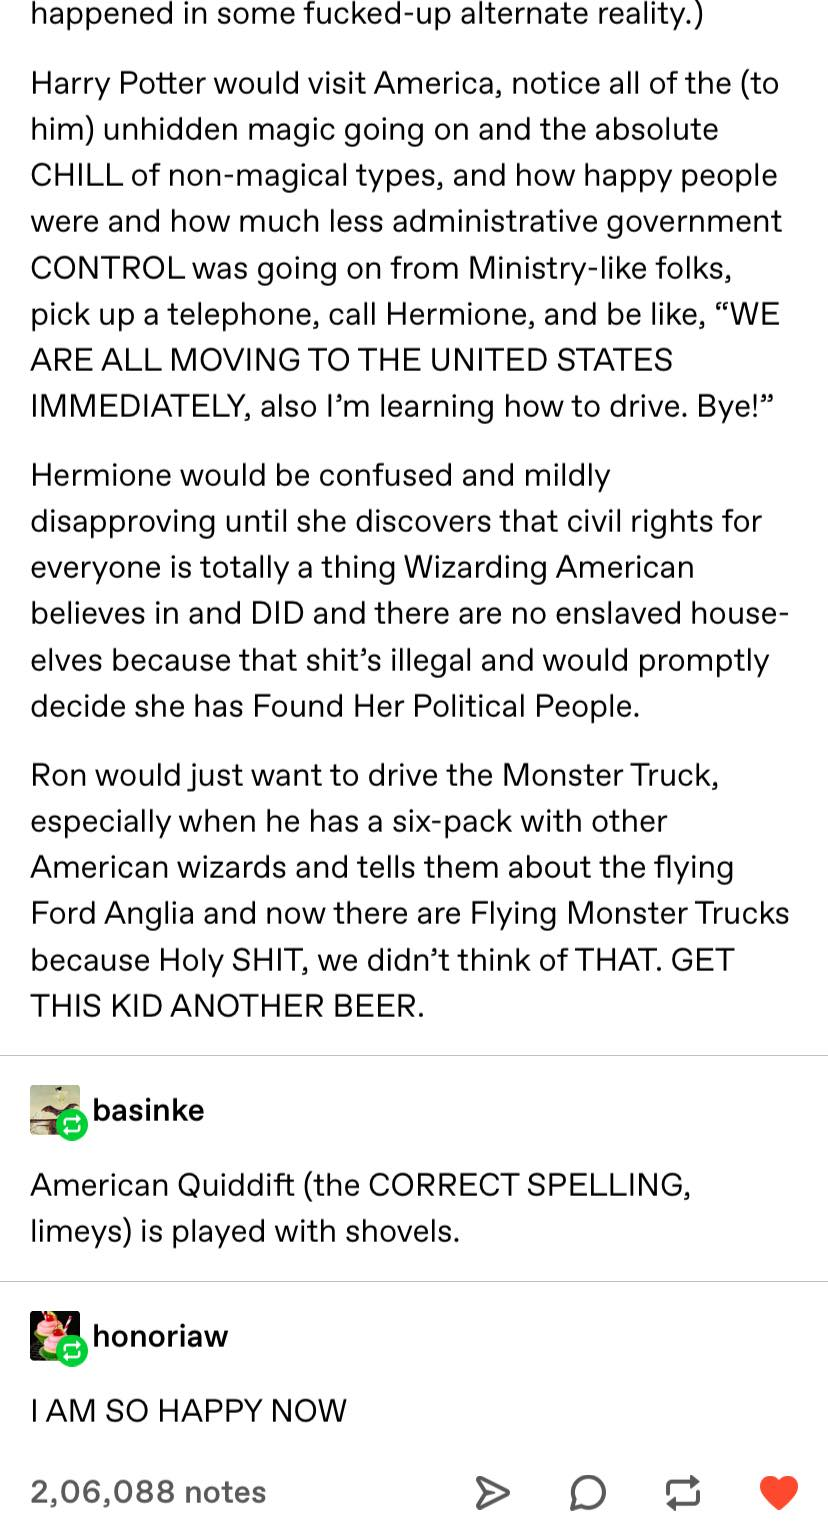 Harry Potter in the USA